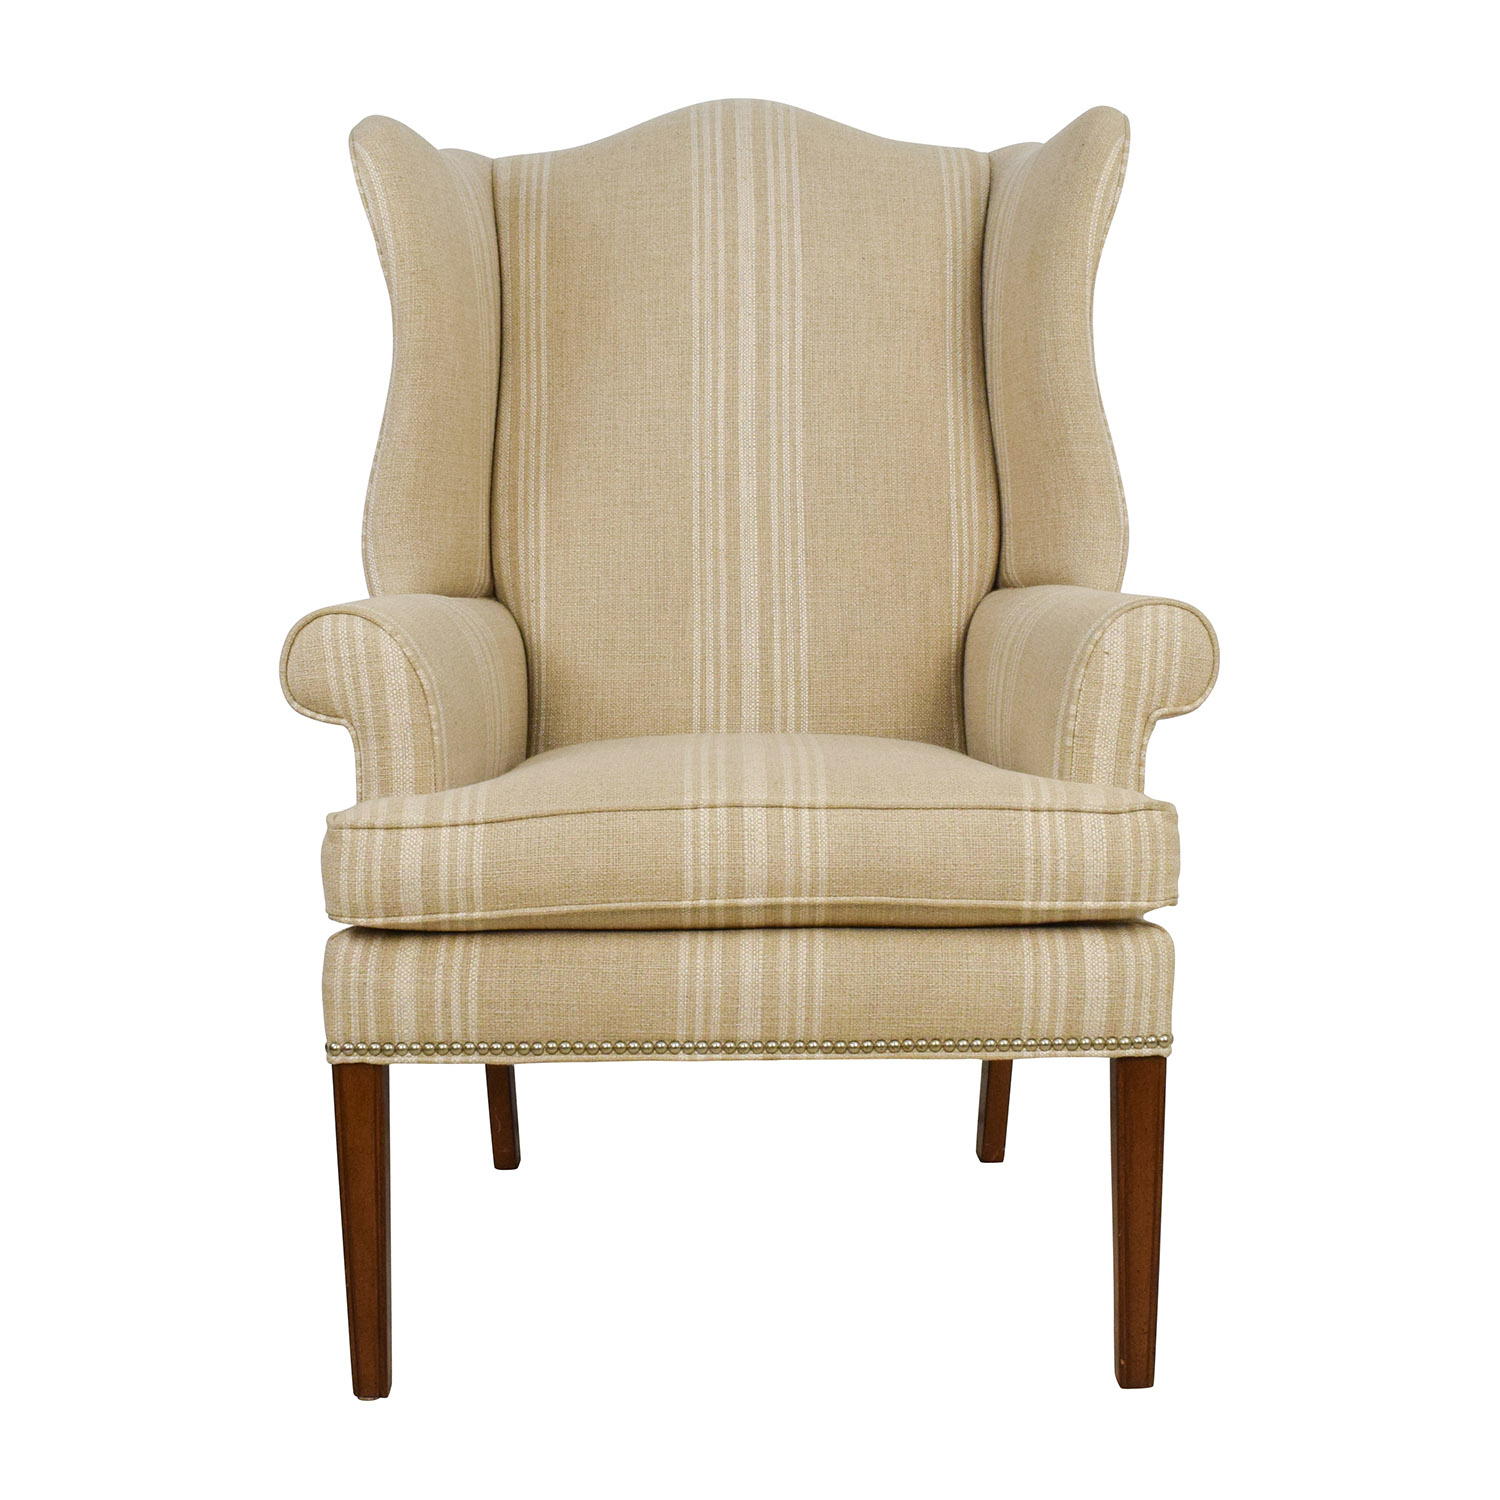 Ethan Allen Ethan Allen Skylar Stripped Wing Chair